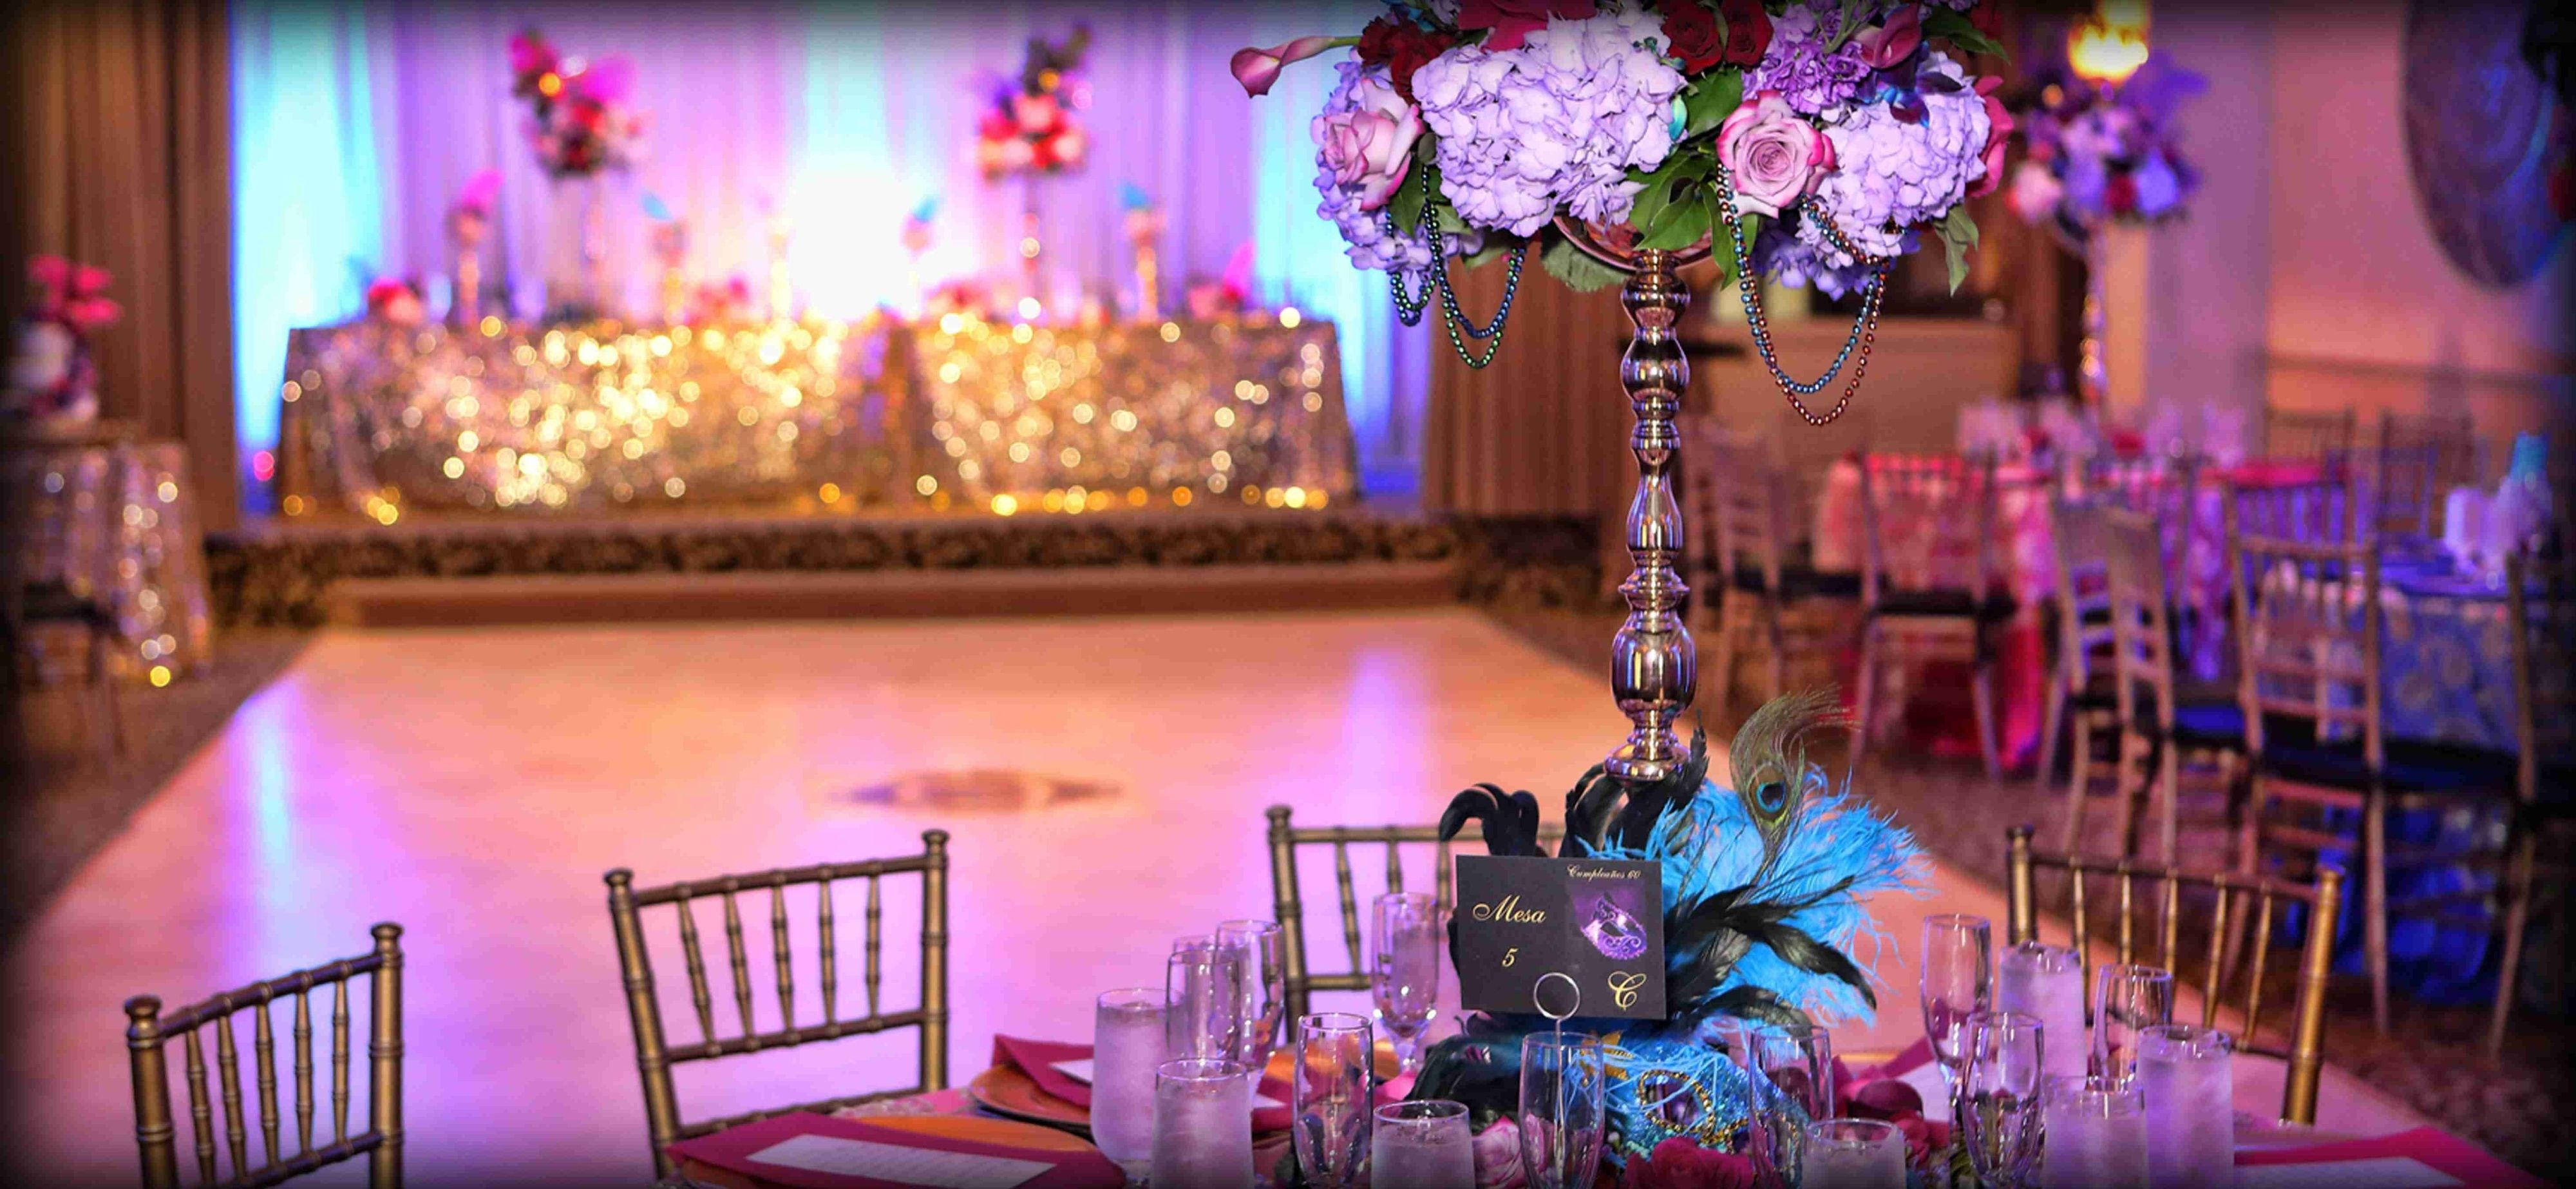 BANQUET HALL YOUR NEEDS